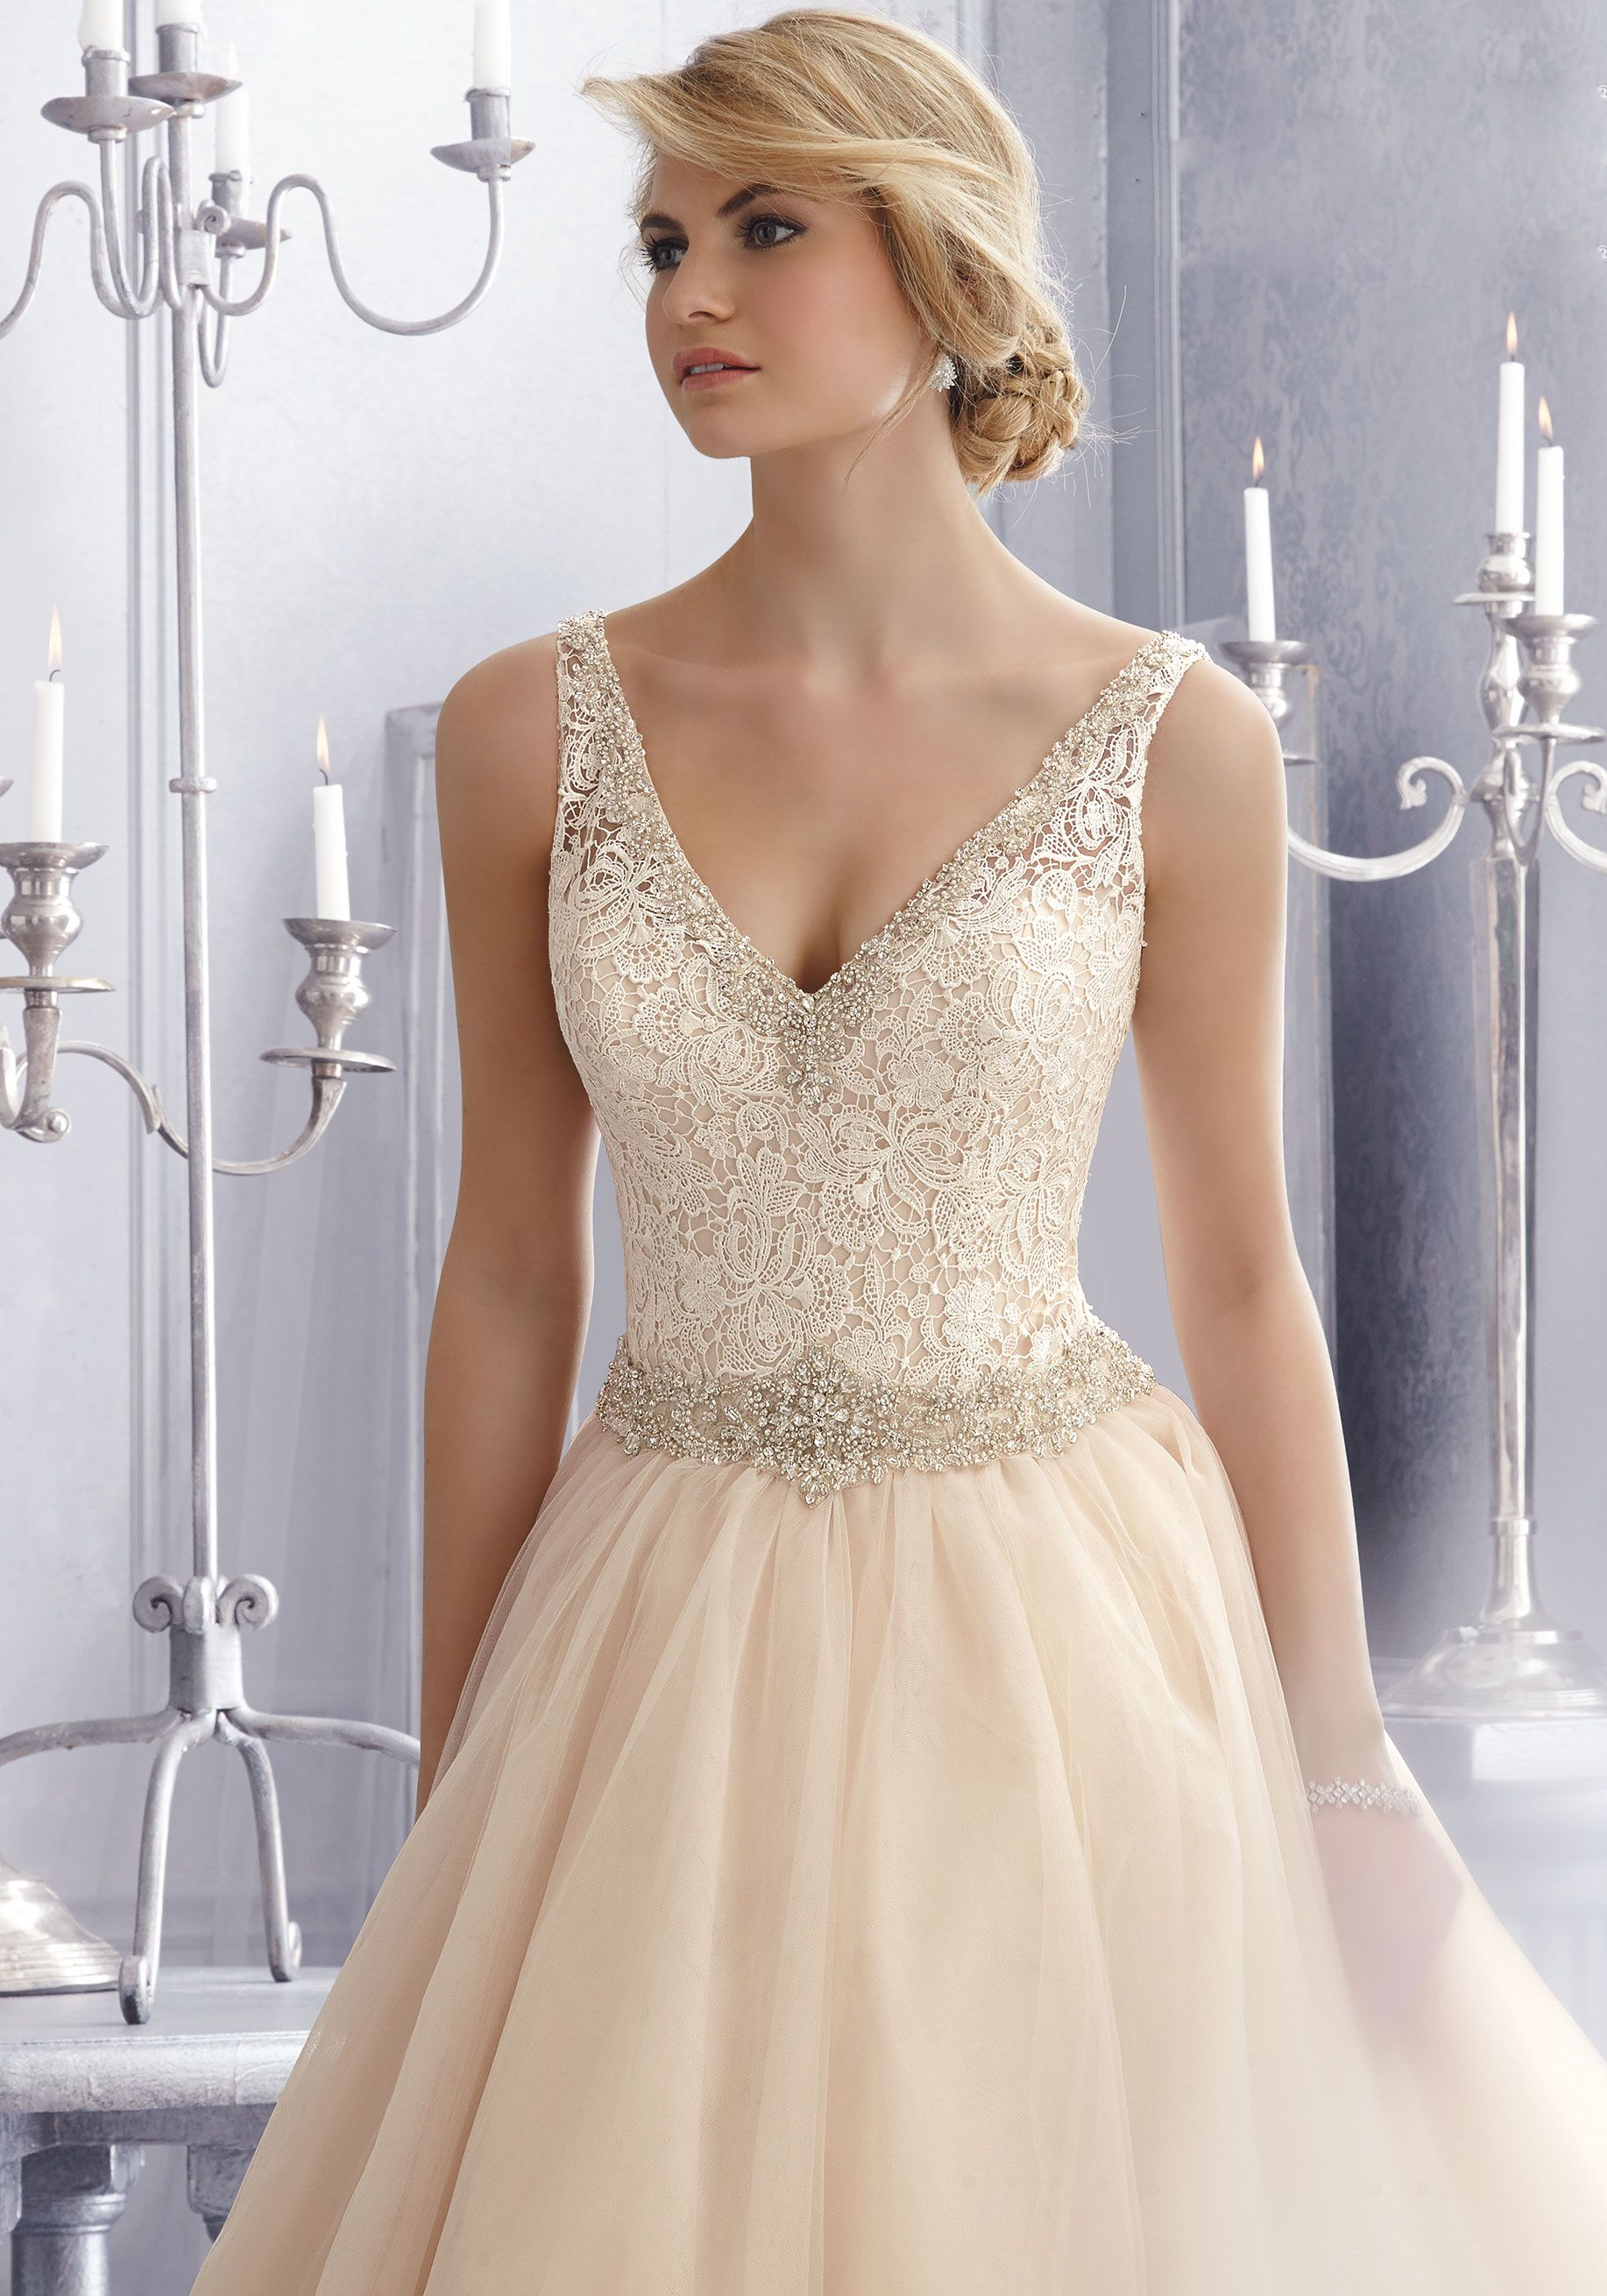 Wedding dresses with beading  Morilee Bridal Crystal Beaded Embroidery Trims Venice Lace on Tulle